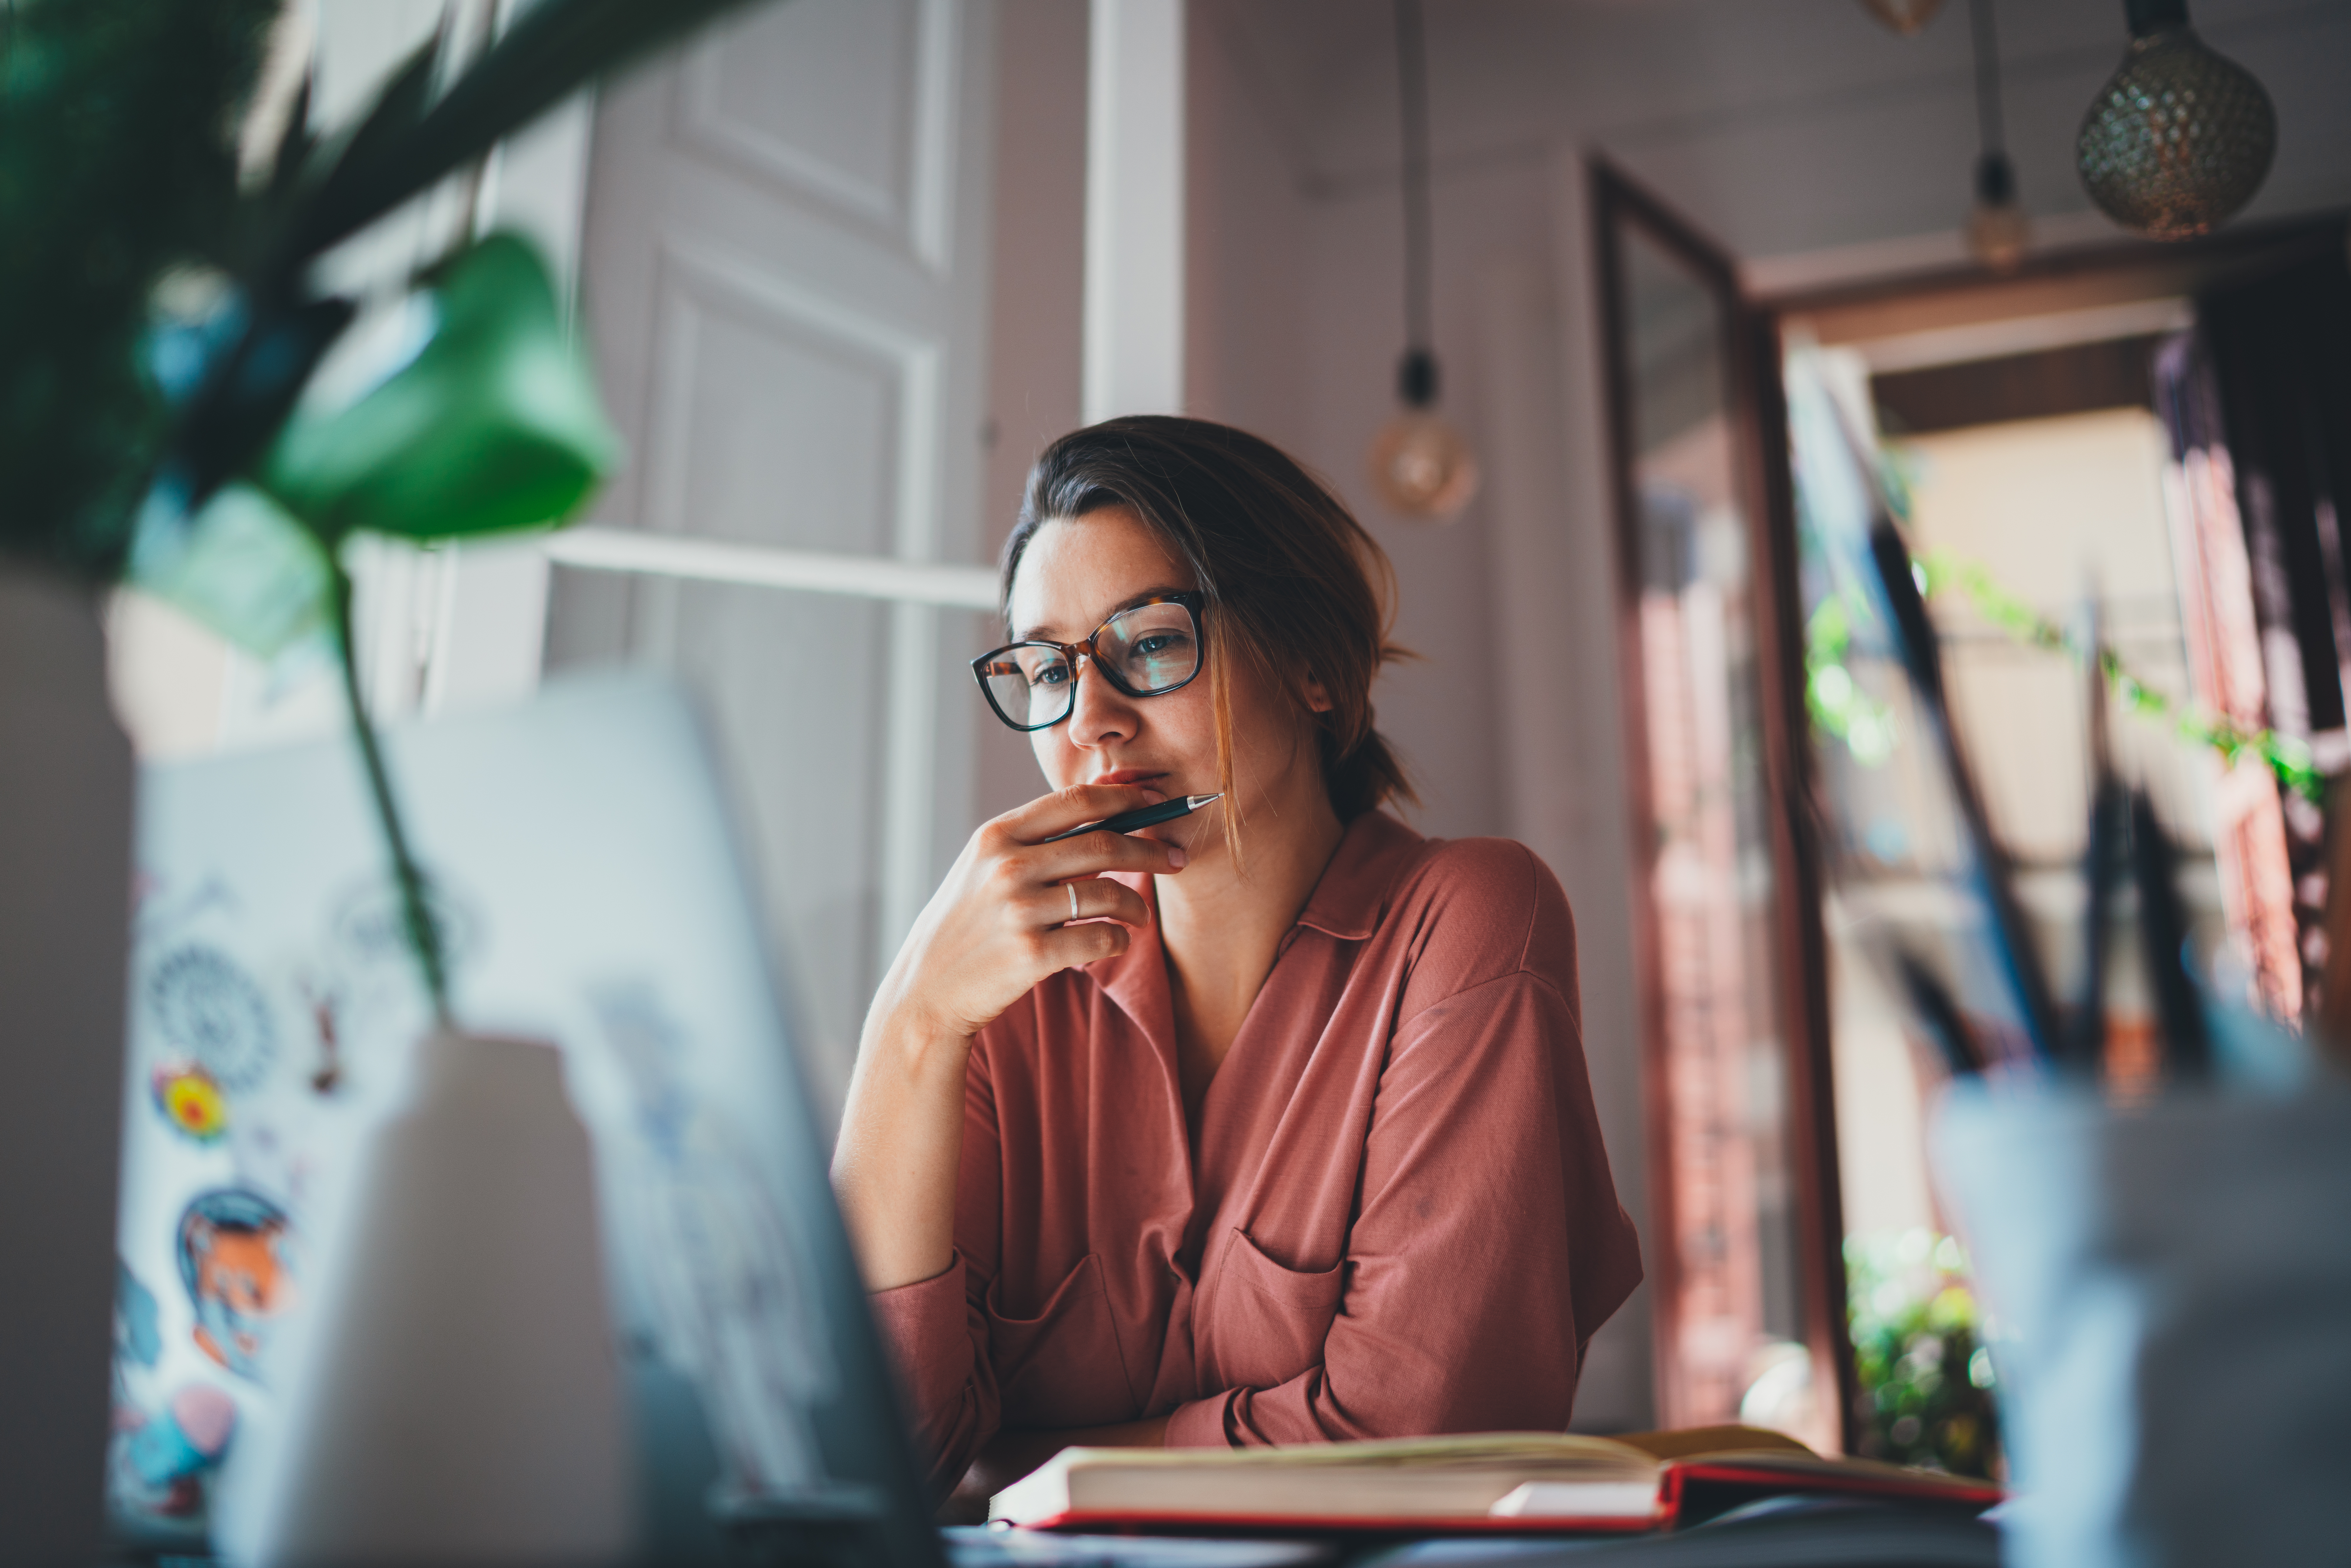 Woman with glasses looking concerned at laptop